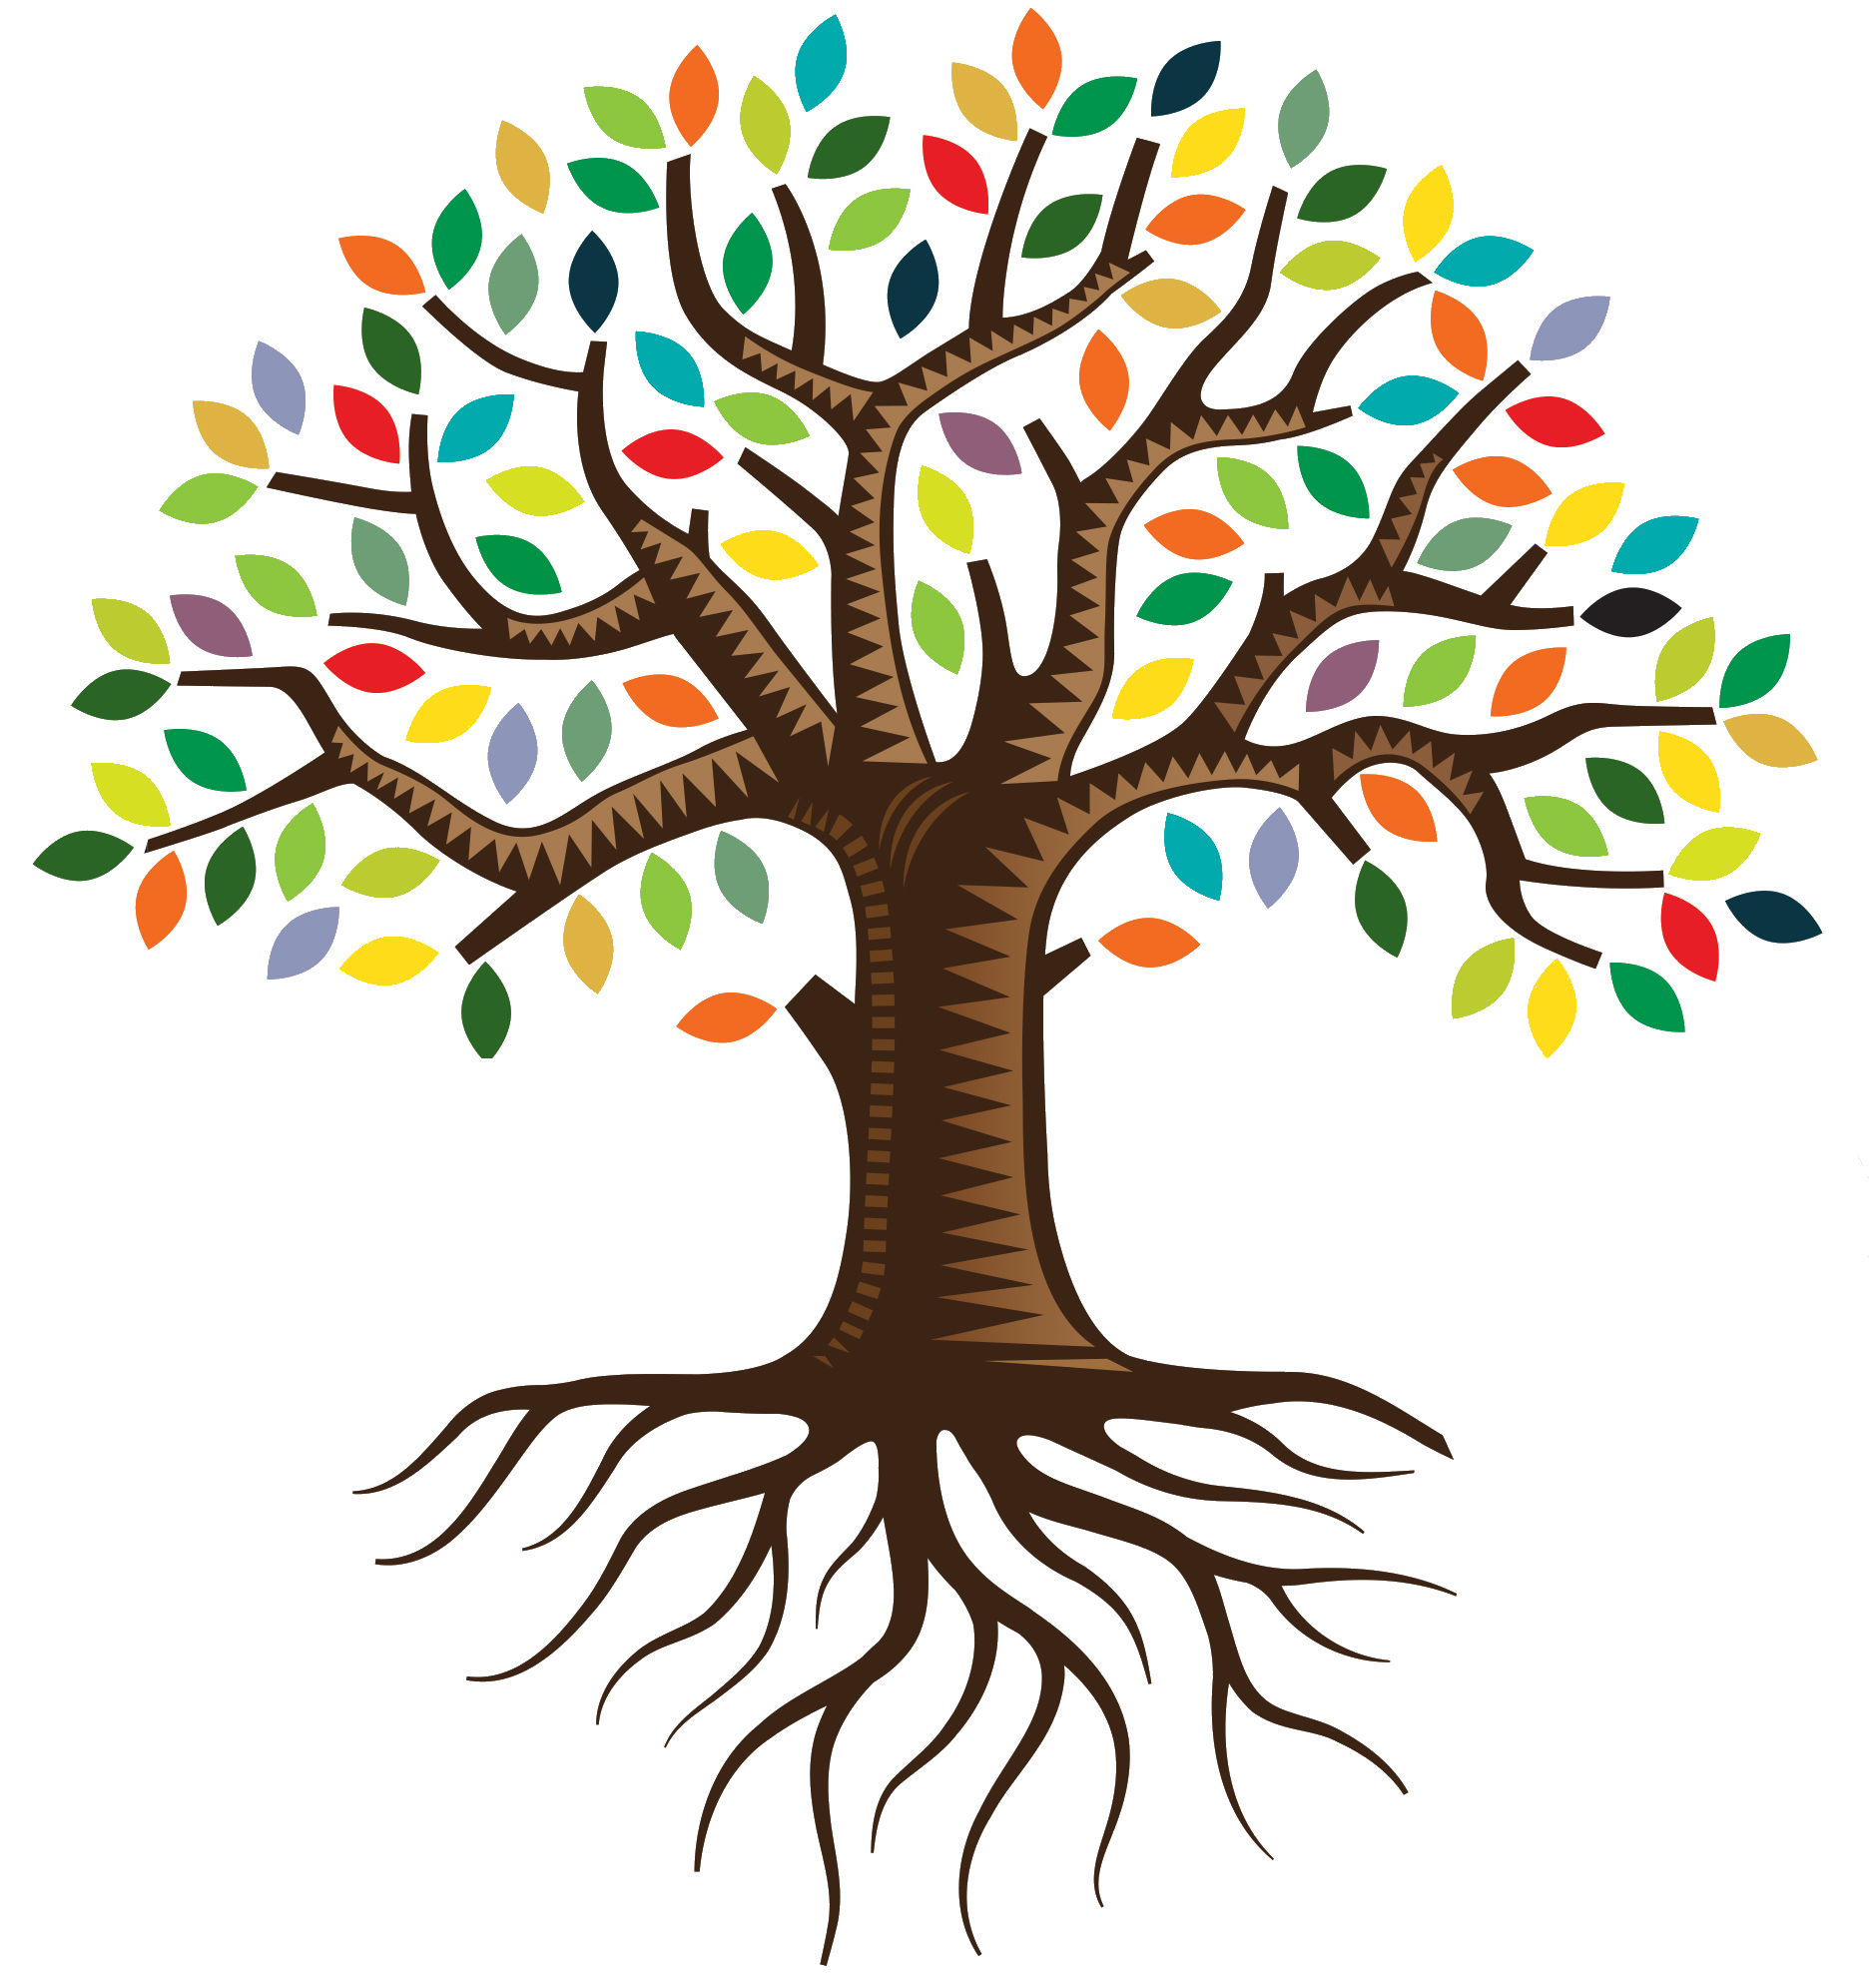 Tree of life clipart png transparent download Root QC Family Tree Logo Clip art - family tree 1872*1991 transprent ... png transparent download